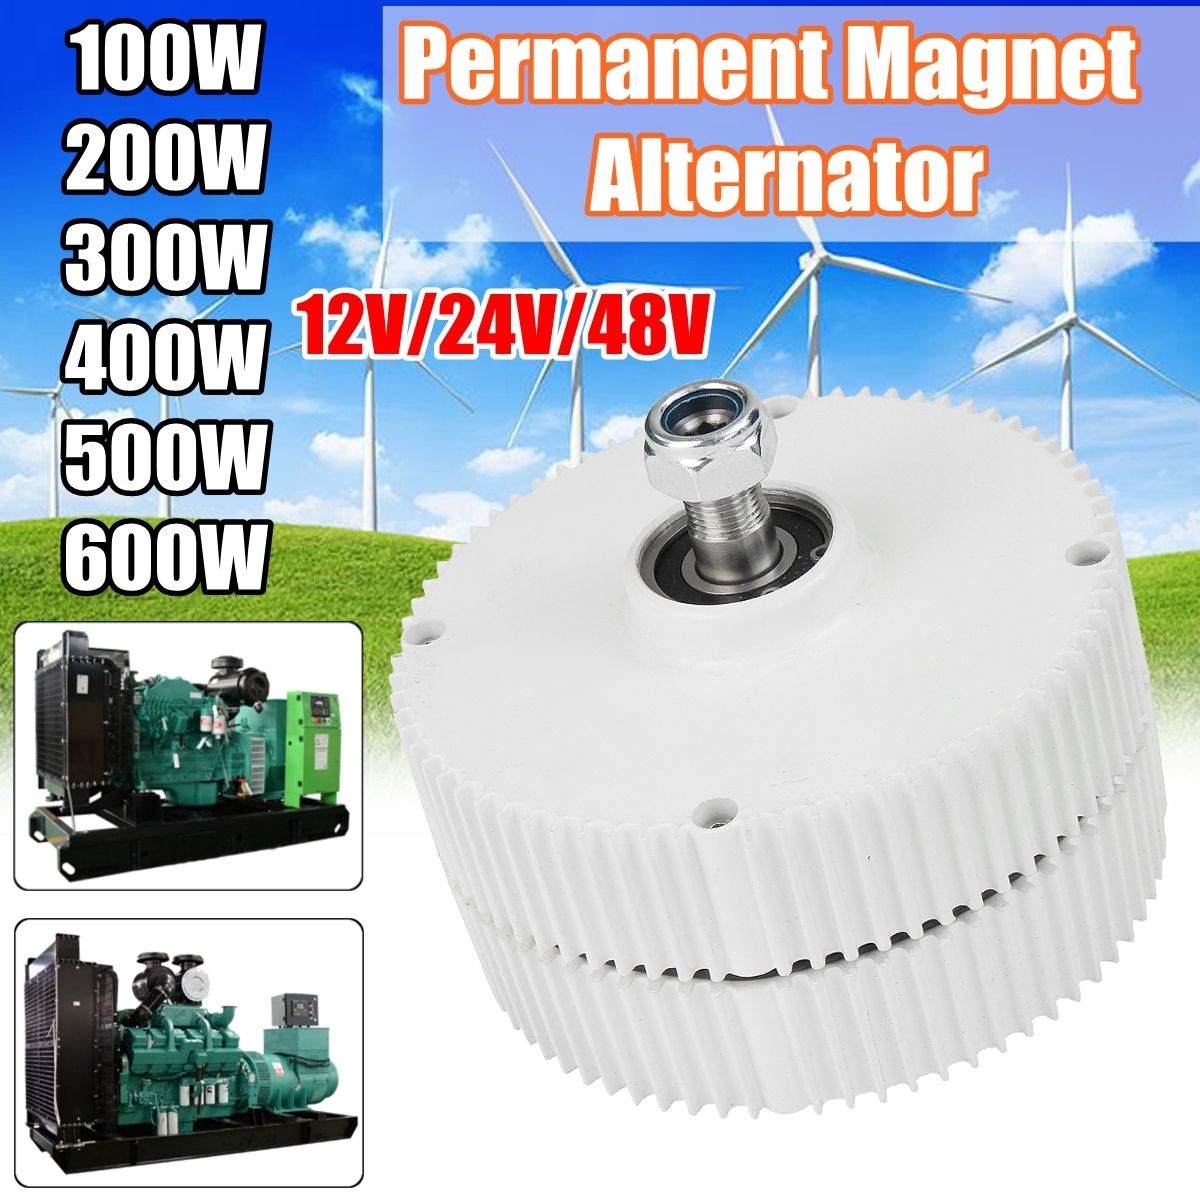 600W 12/24/48V Permanent Magnet Synchronous Motor Generator Wind Wind T urbine